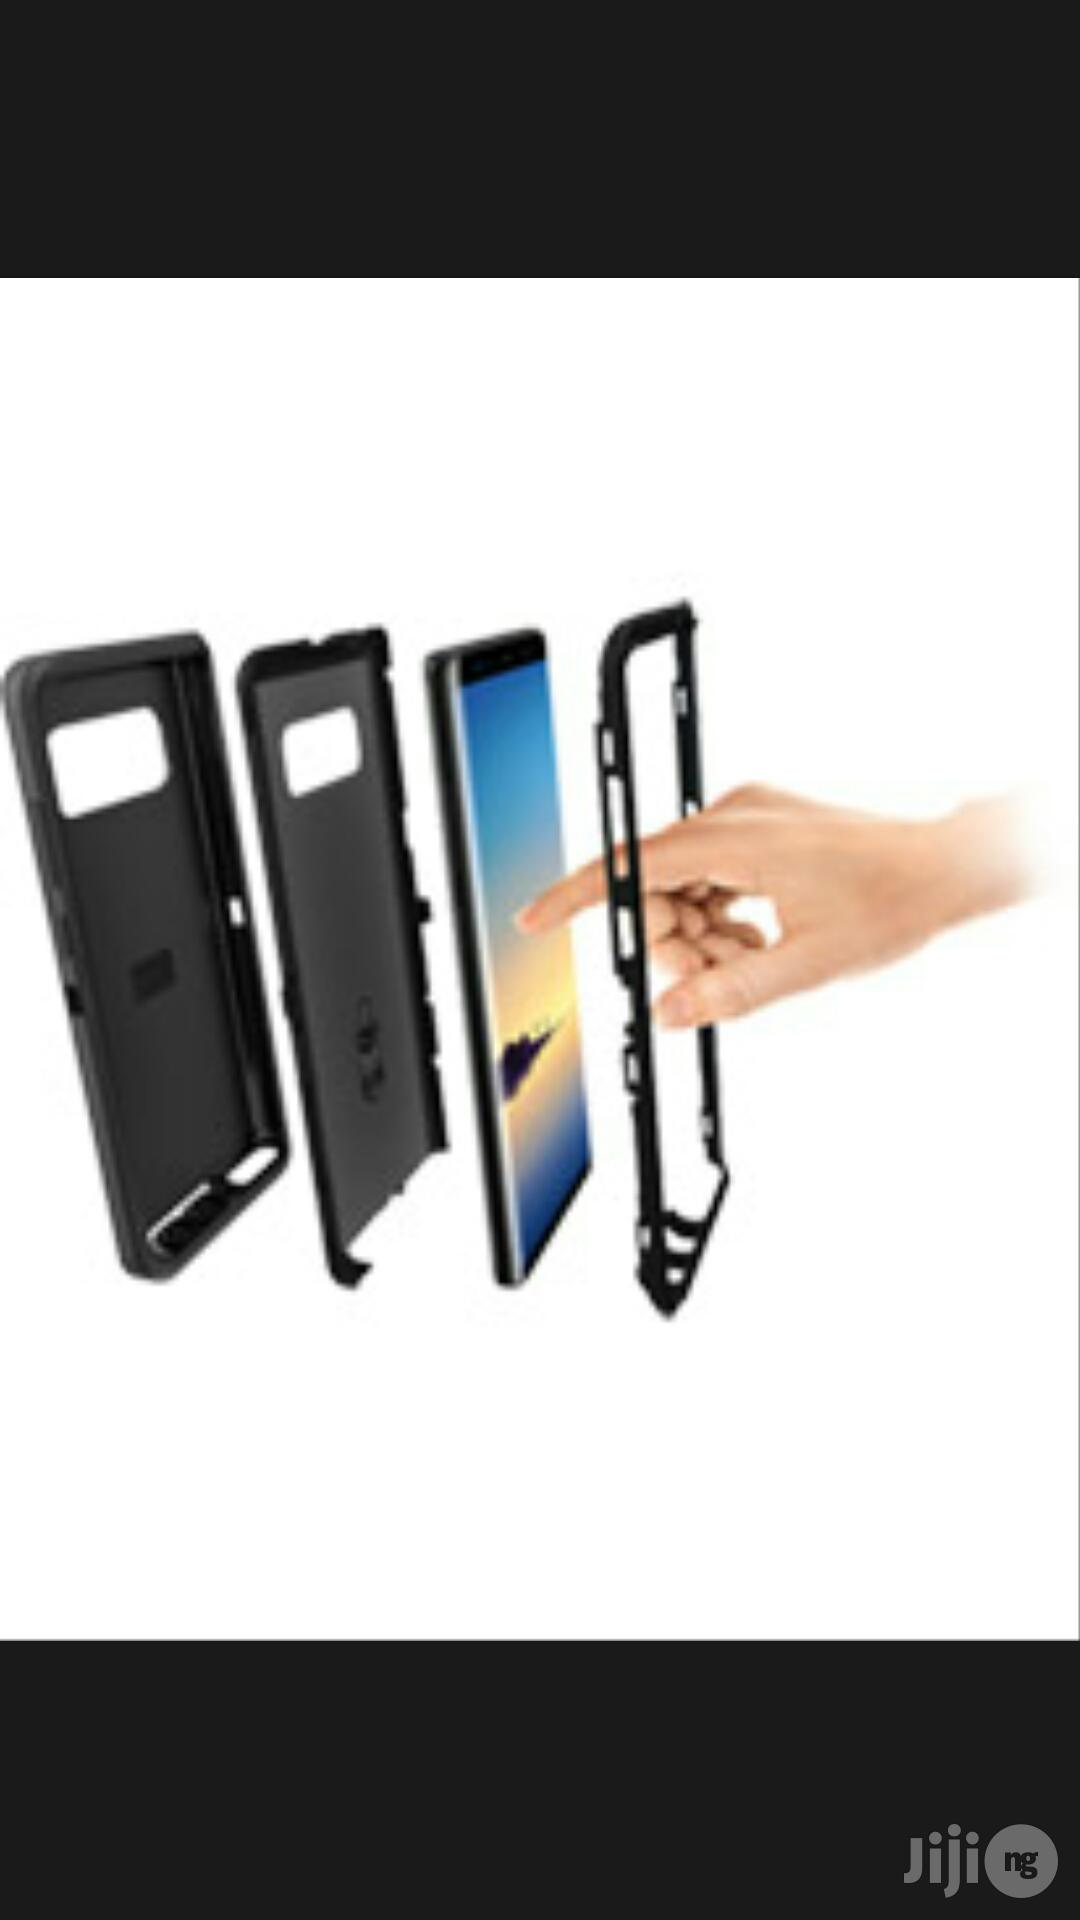 Samsung Note 8 Otter Box Defender Case | Accessories for Mobile Phones & Tablets for sale in Ikeja, Lagos State, Nigeria